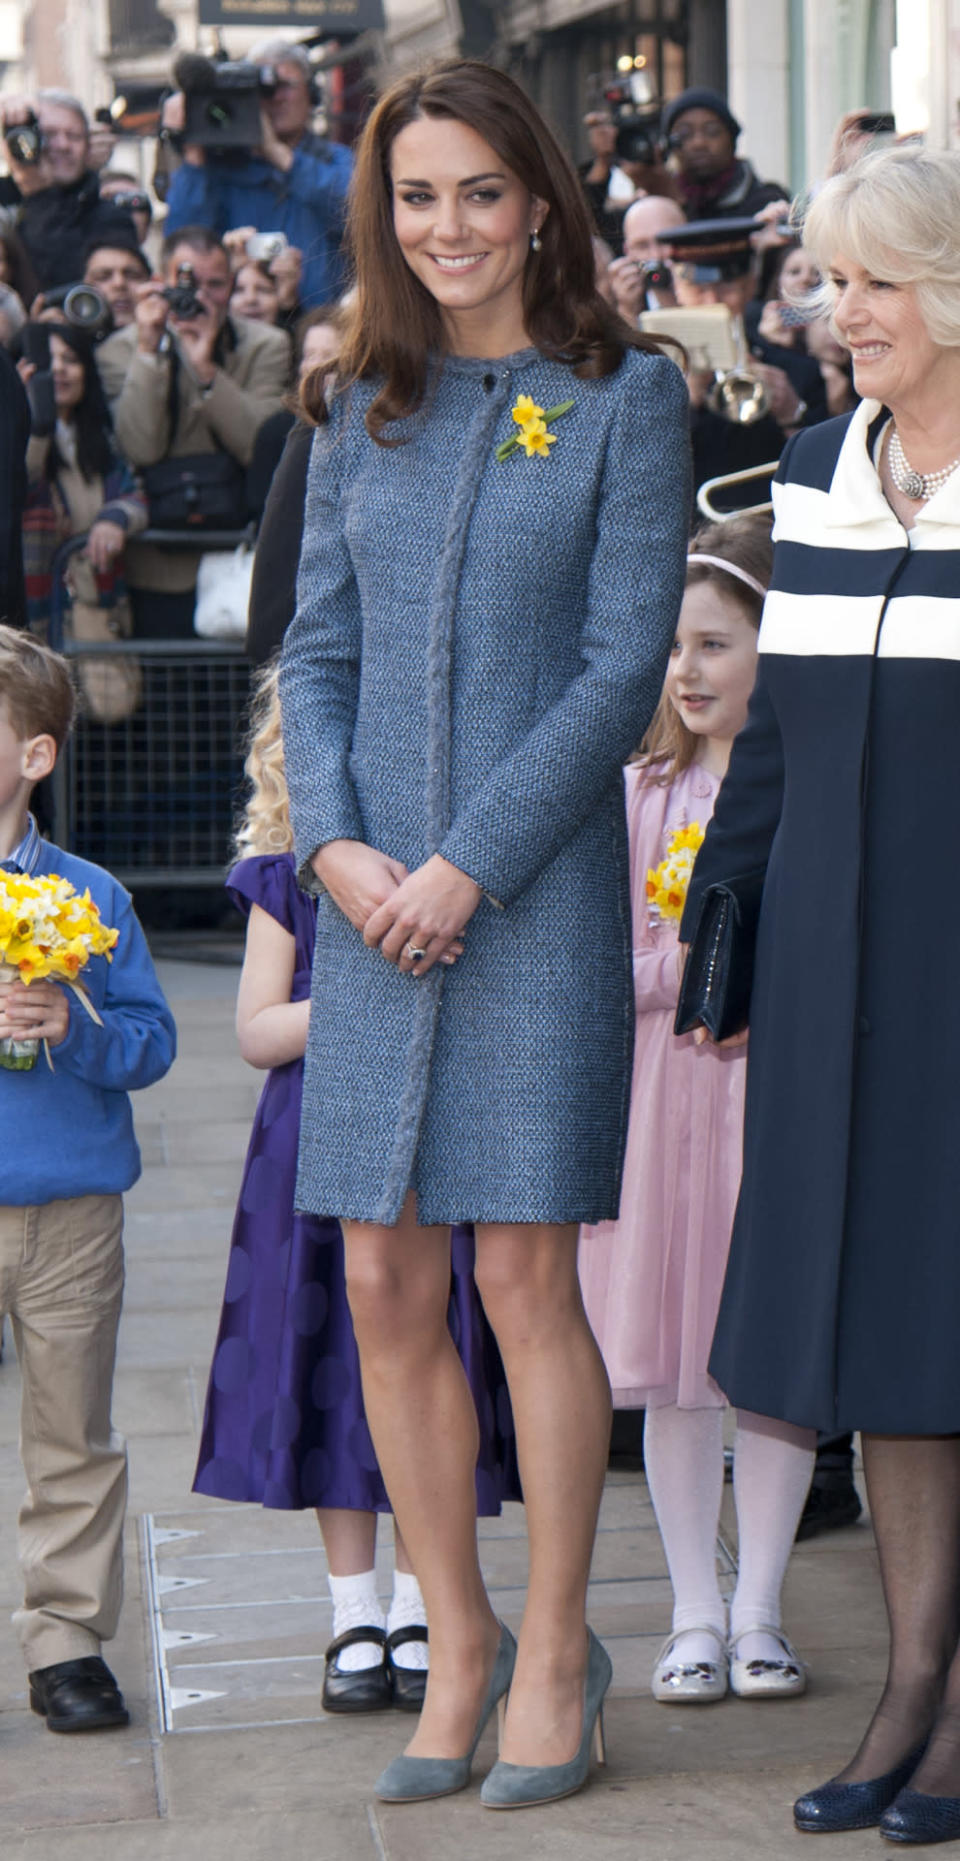 <p>Kate visited Fortnum and Mason wearing a blue tweed coat by Missoni paired with grey Rupert Sanderson pumps. </p><p><i>[Photo: PA]</i></p>